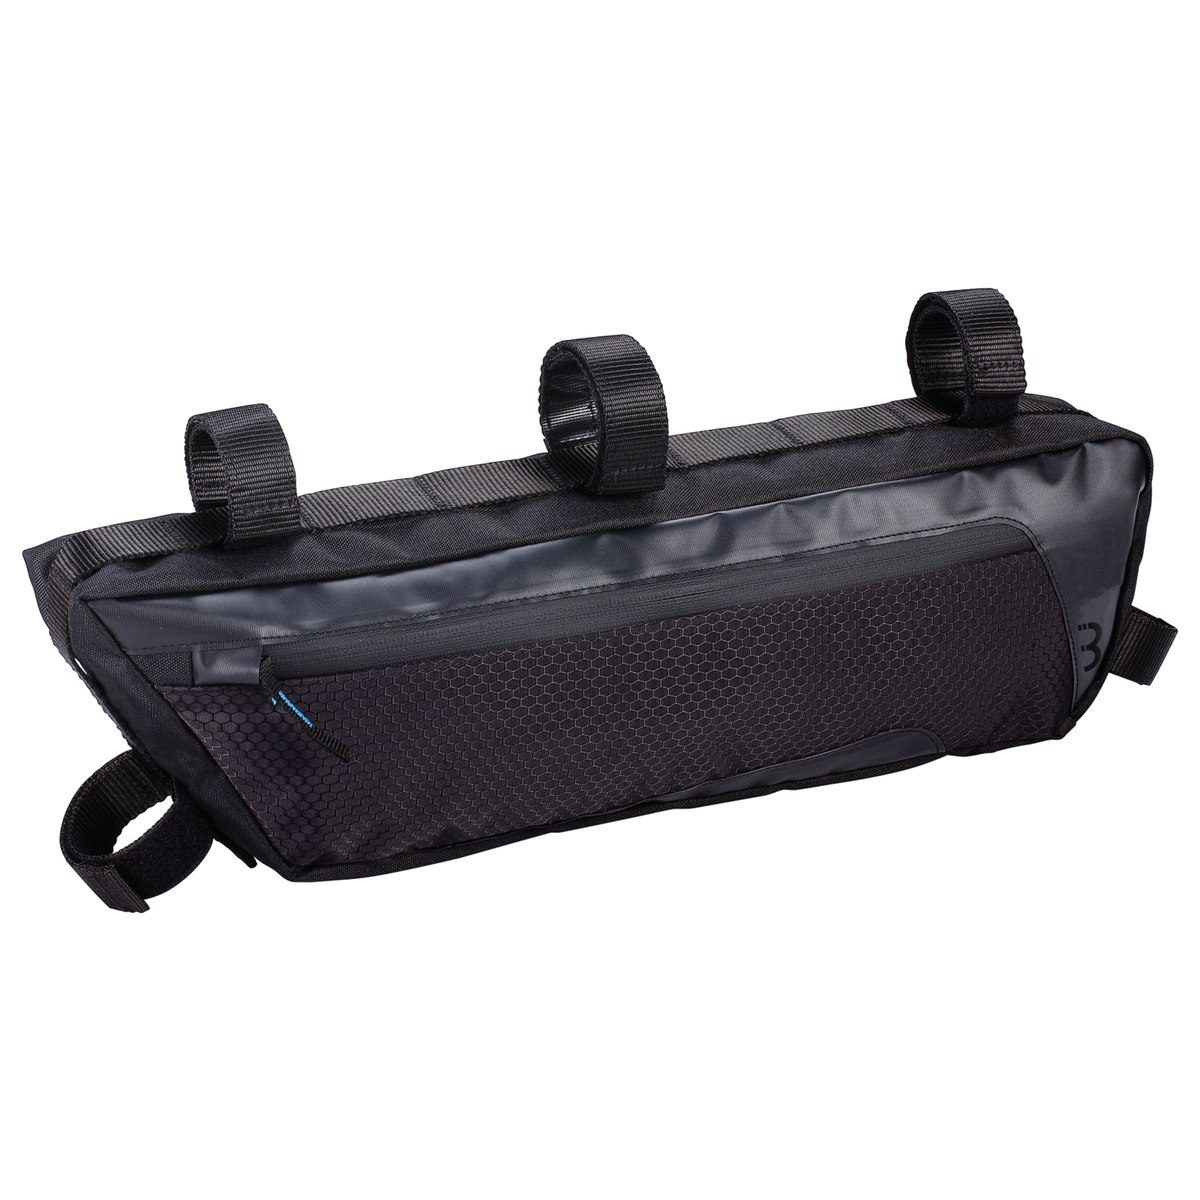 BBB Cycling Middle Mate BSB-142 Tube Bag - black